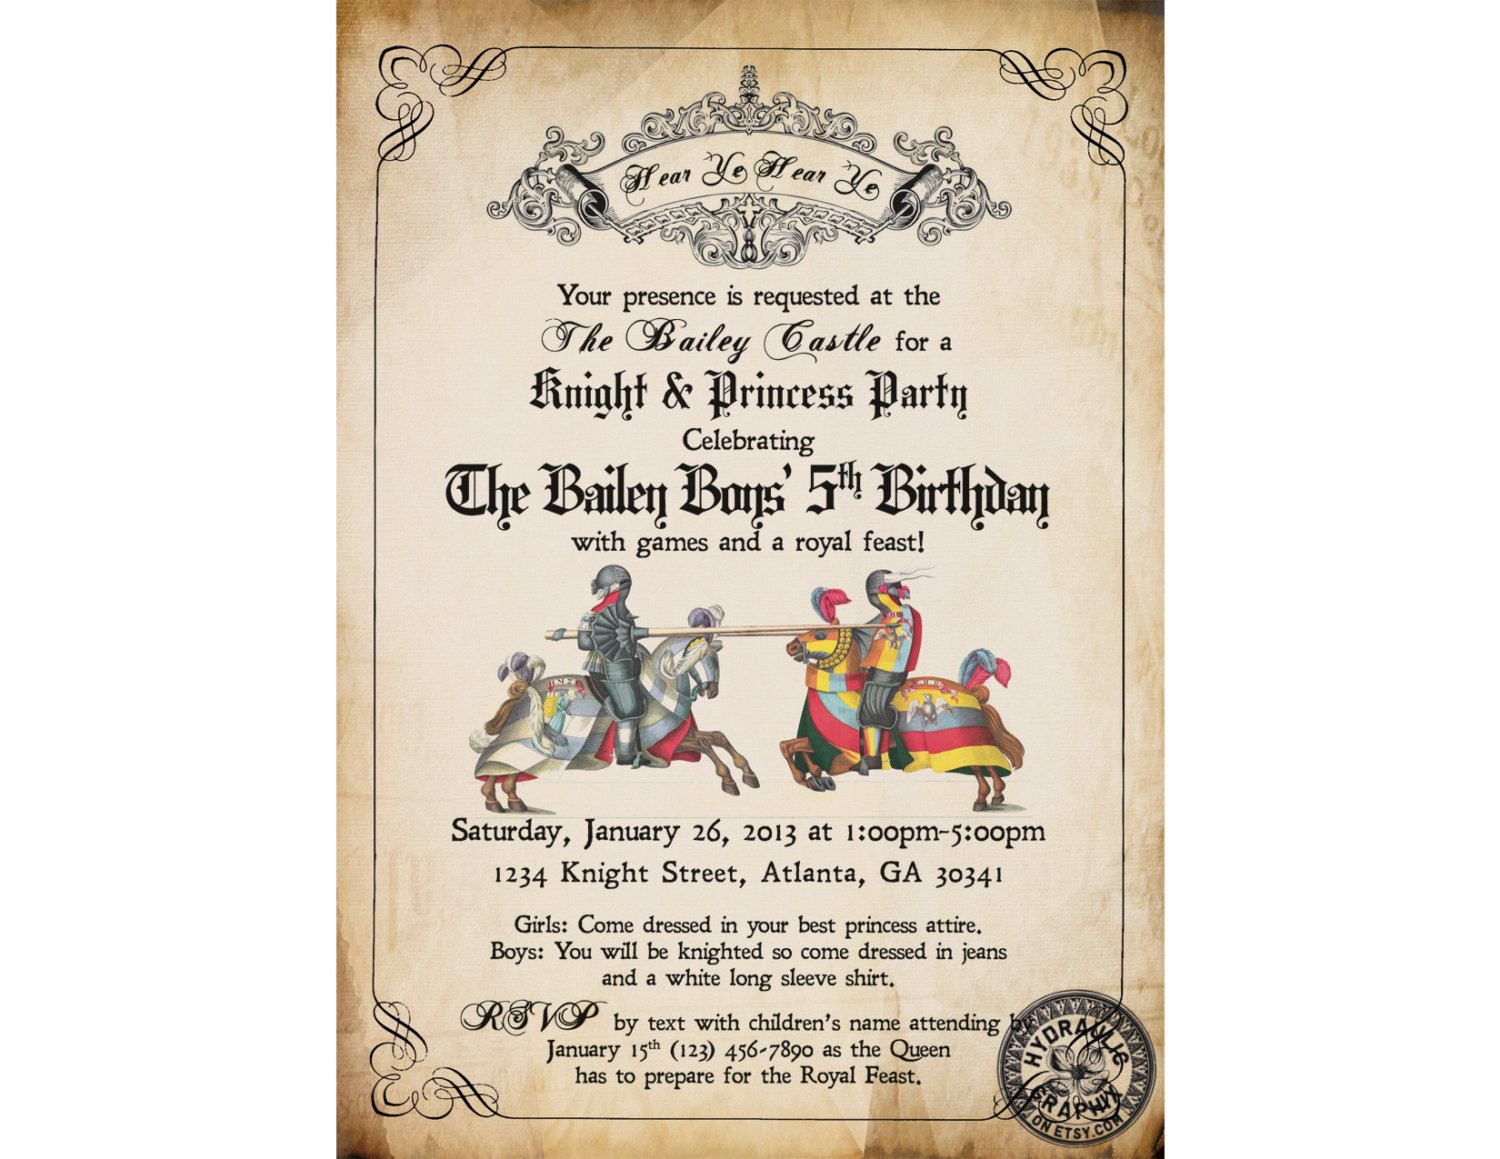 Medieval Wedding Invitation Wording: Medieval Times Or Renaissance Birthday Party Invitation